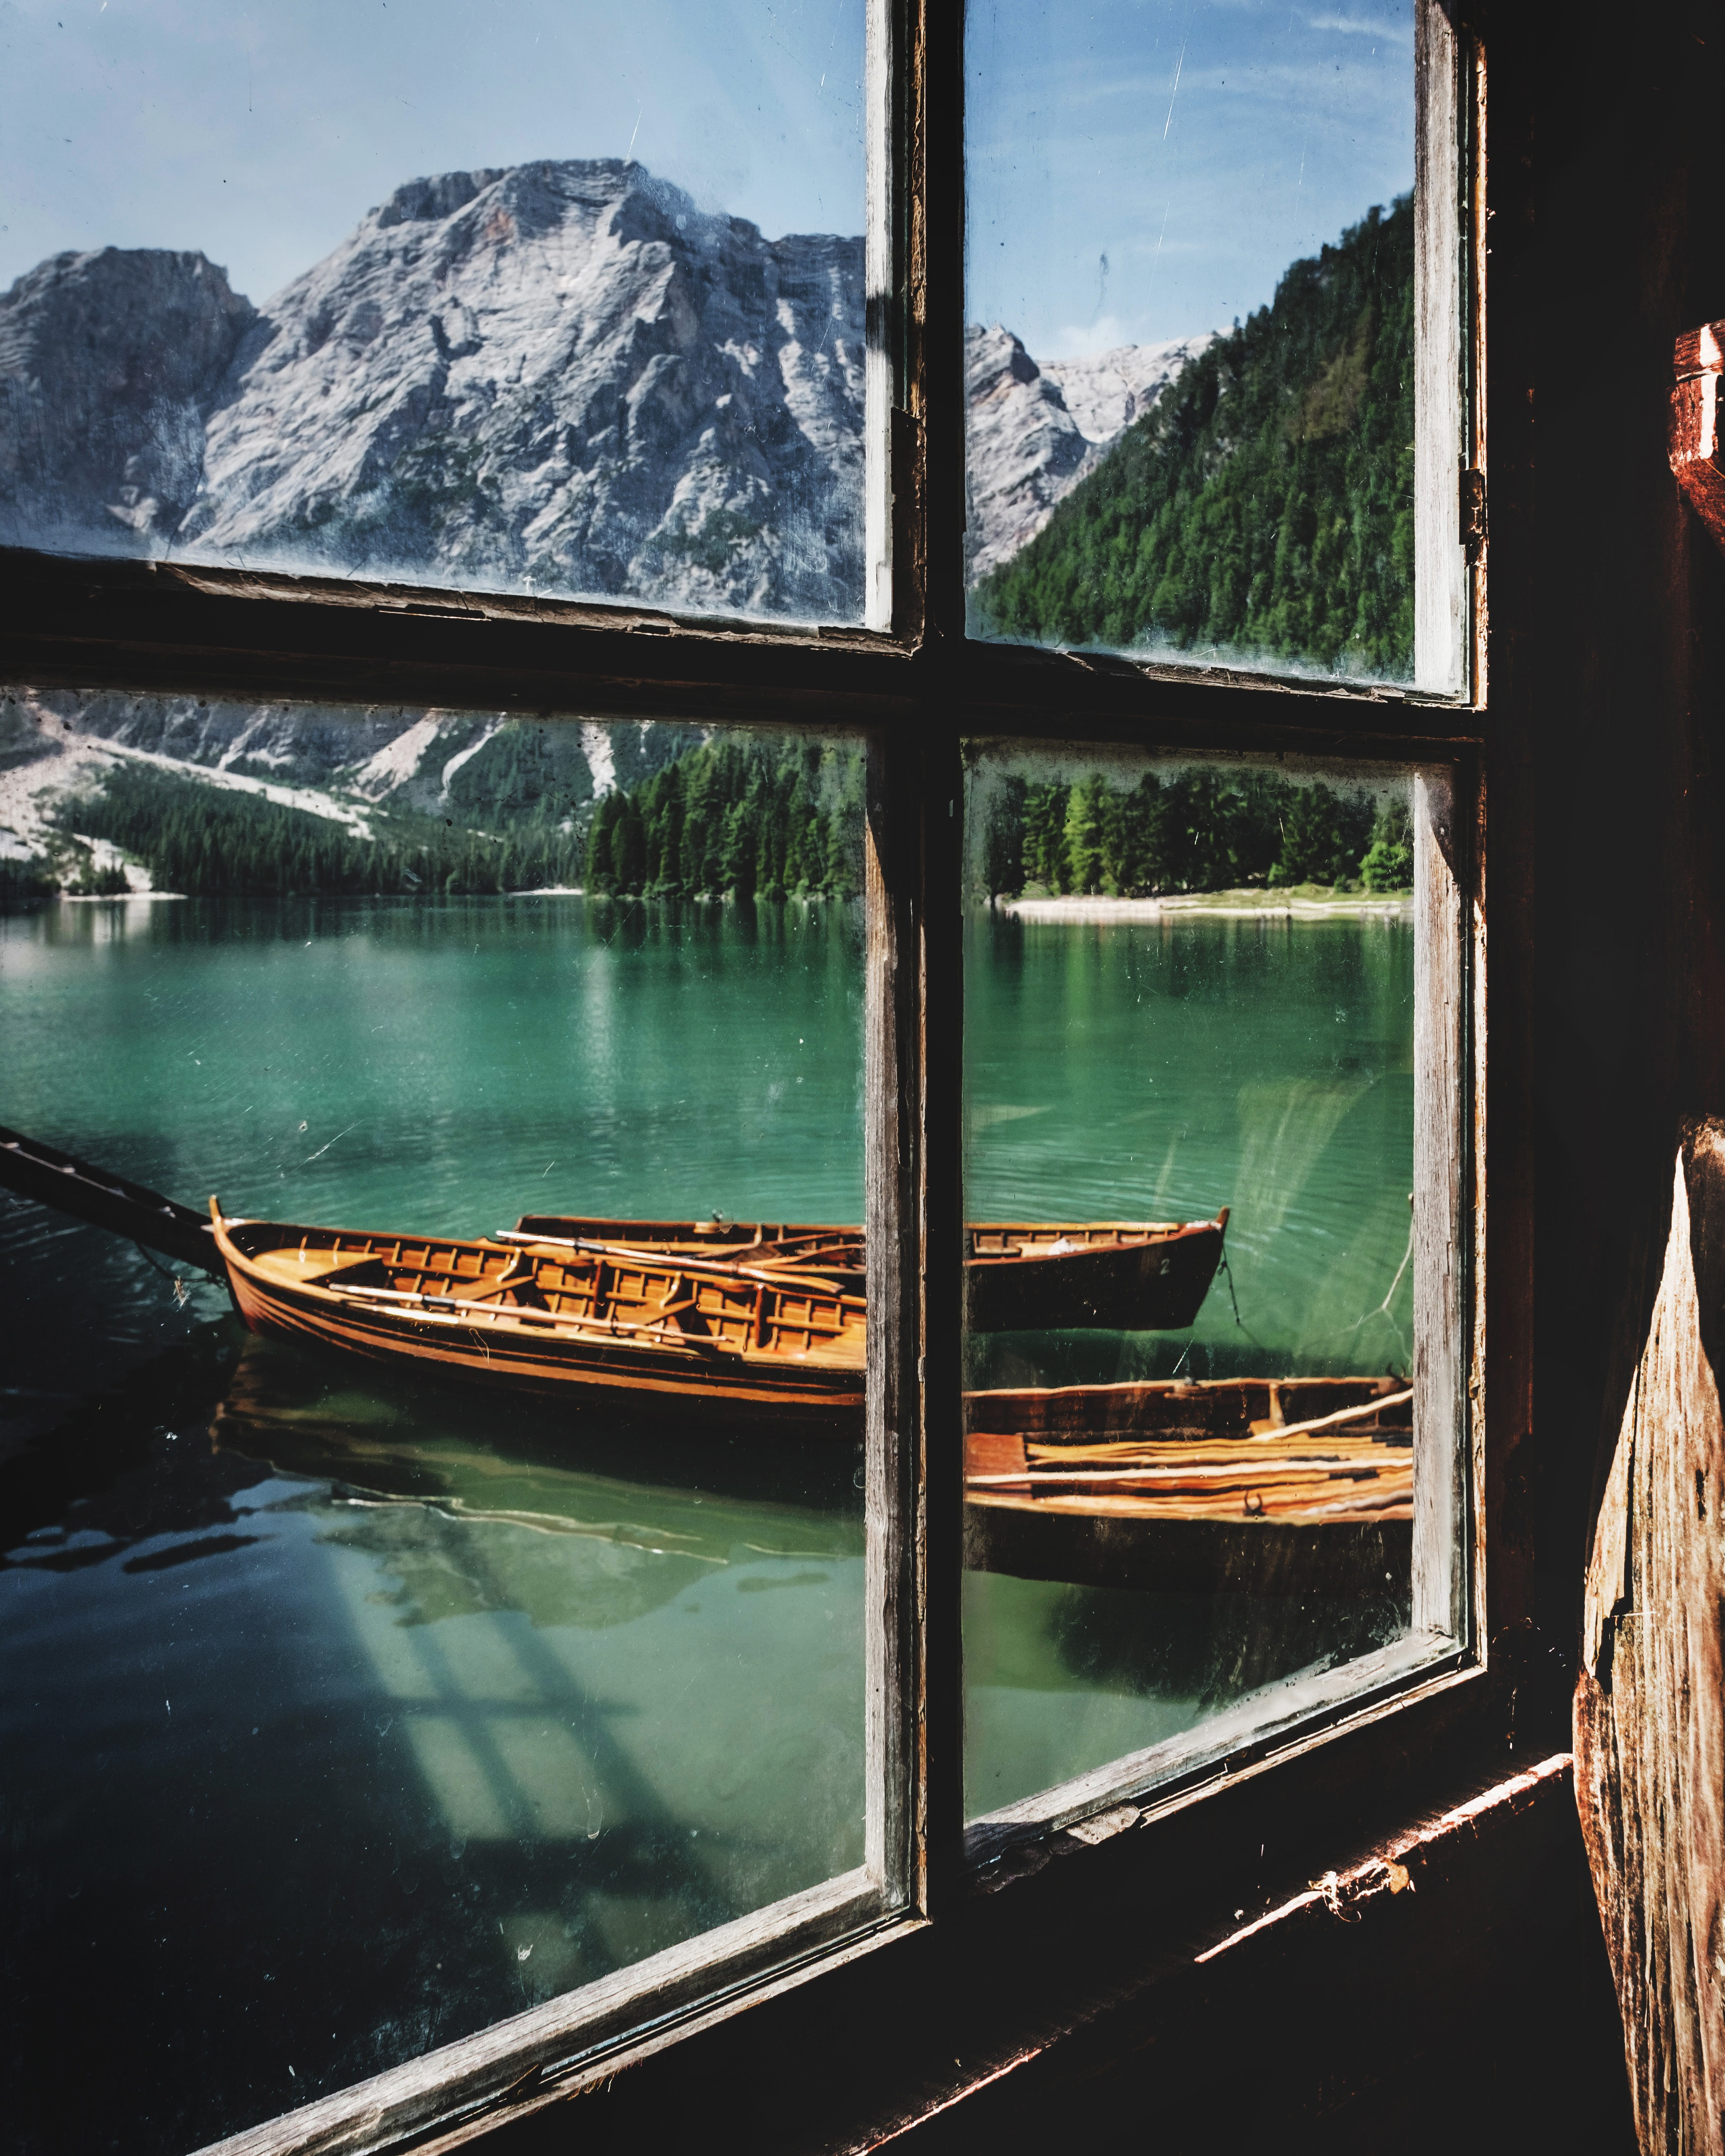 A window view looking at a pair of boats floating in the river with a mix of green and snow covered mountains.